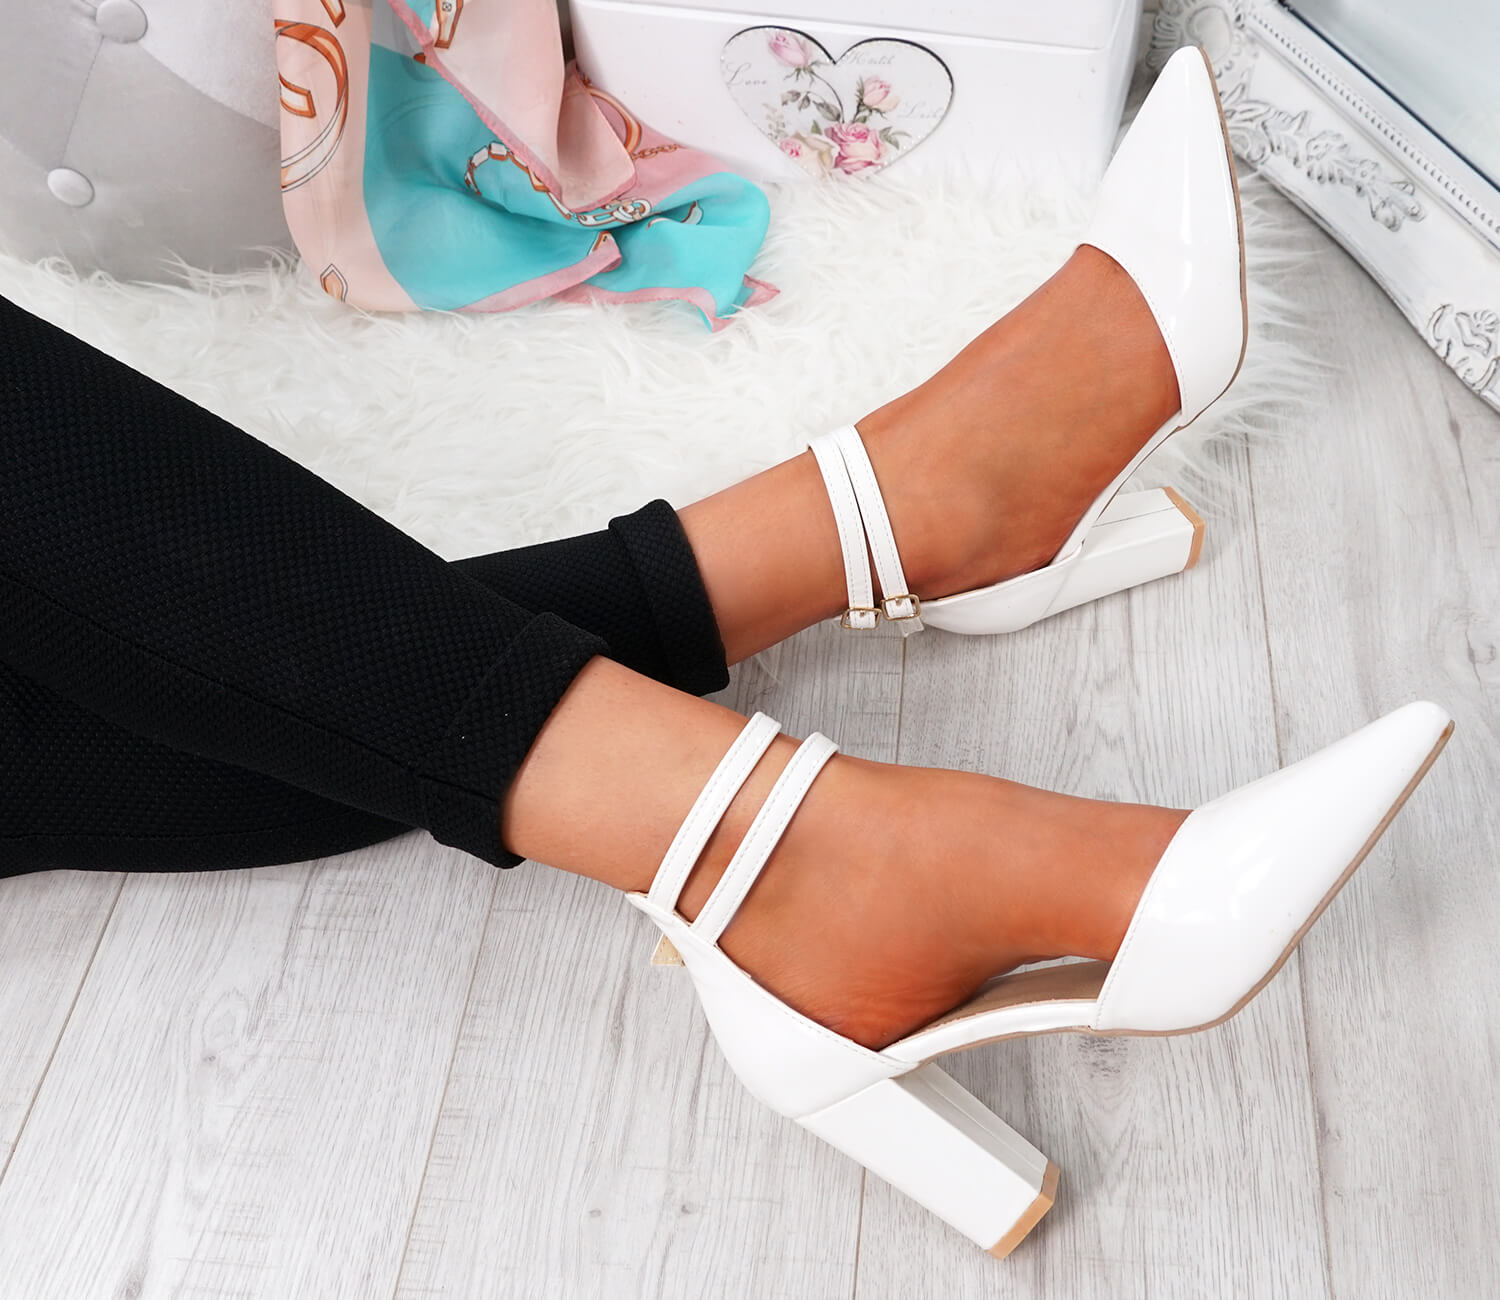 WOMENS-LADIES-ANKLE-DOUBLE-STRAP-HIGH-BLOCK-HEEL-POINTED-TOE-PARTY-SHOES-SIZE thumbnail 18